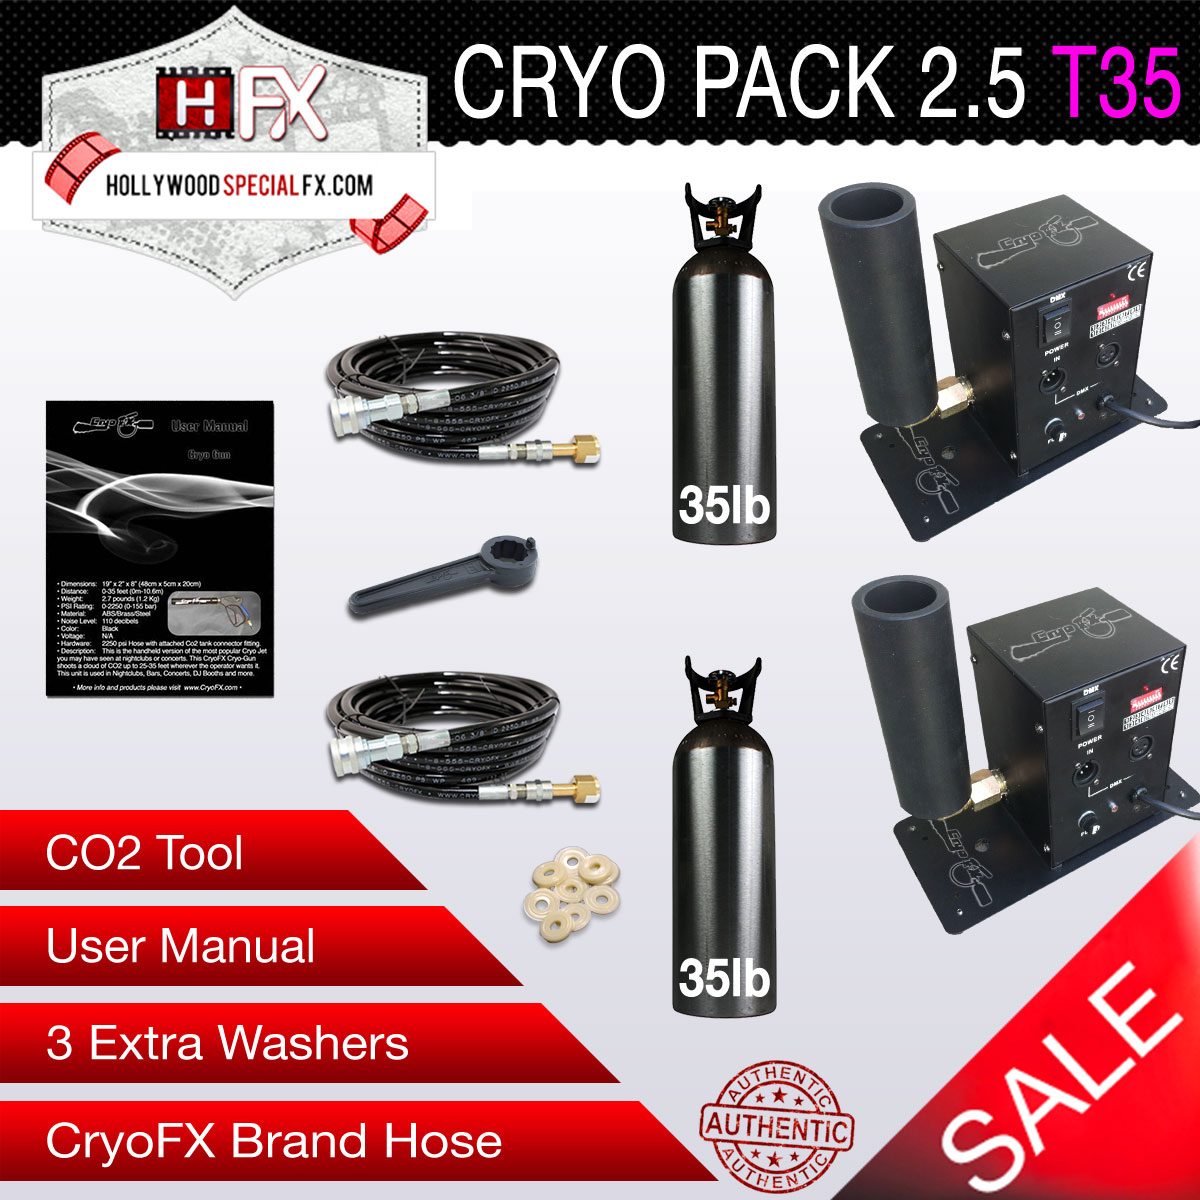 Cryo Pack 2.5 T35 2 CO2 Jets with 2 35lbs Tanks